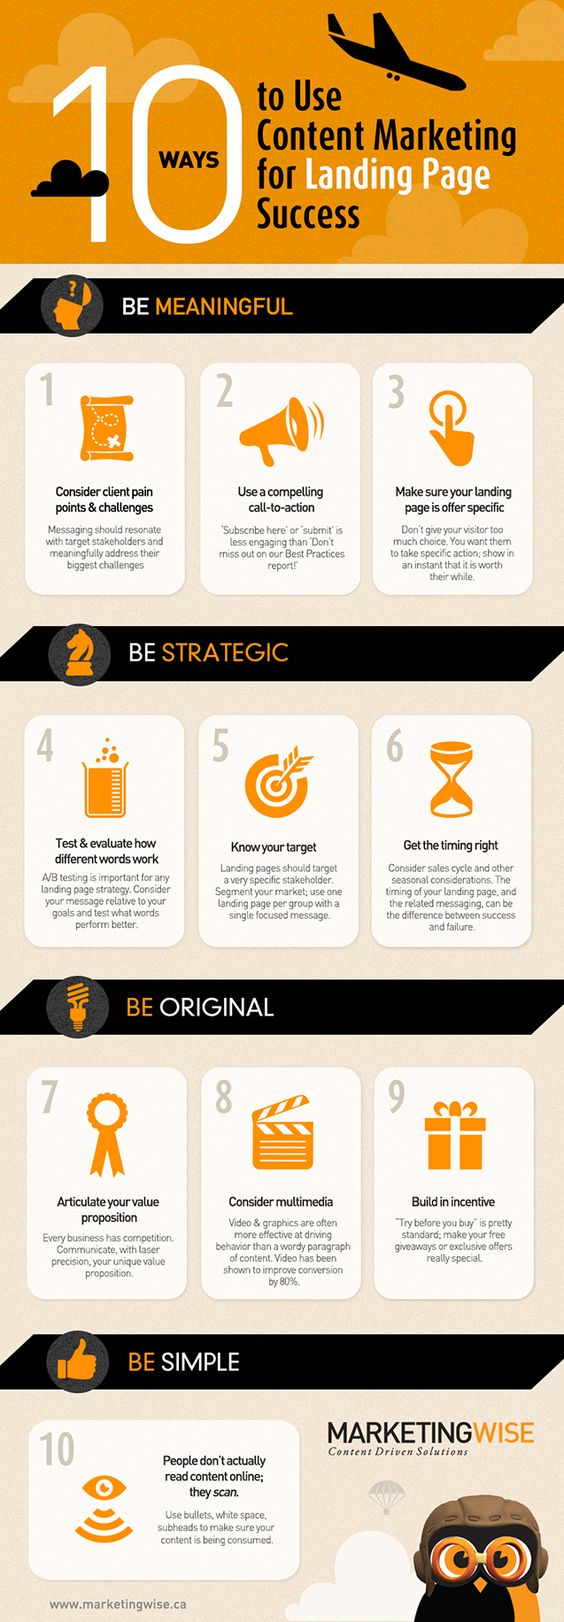 10-ways-content-marketing-landing-page-success